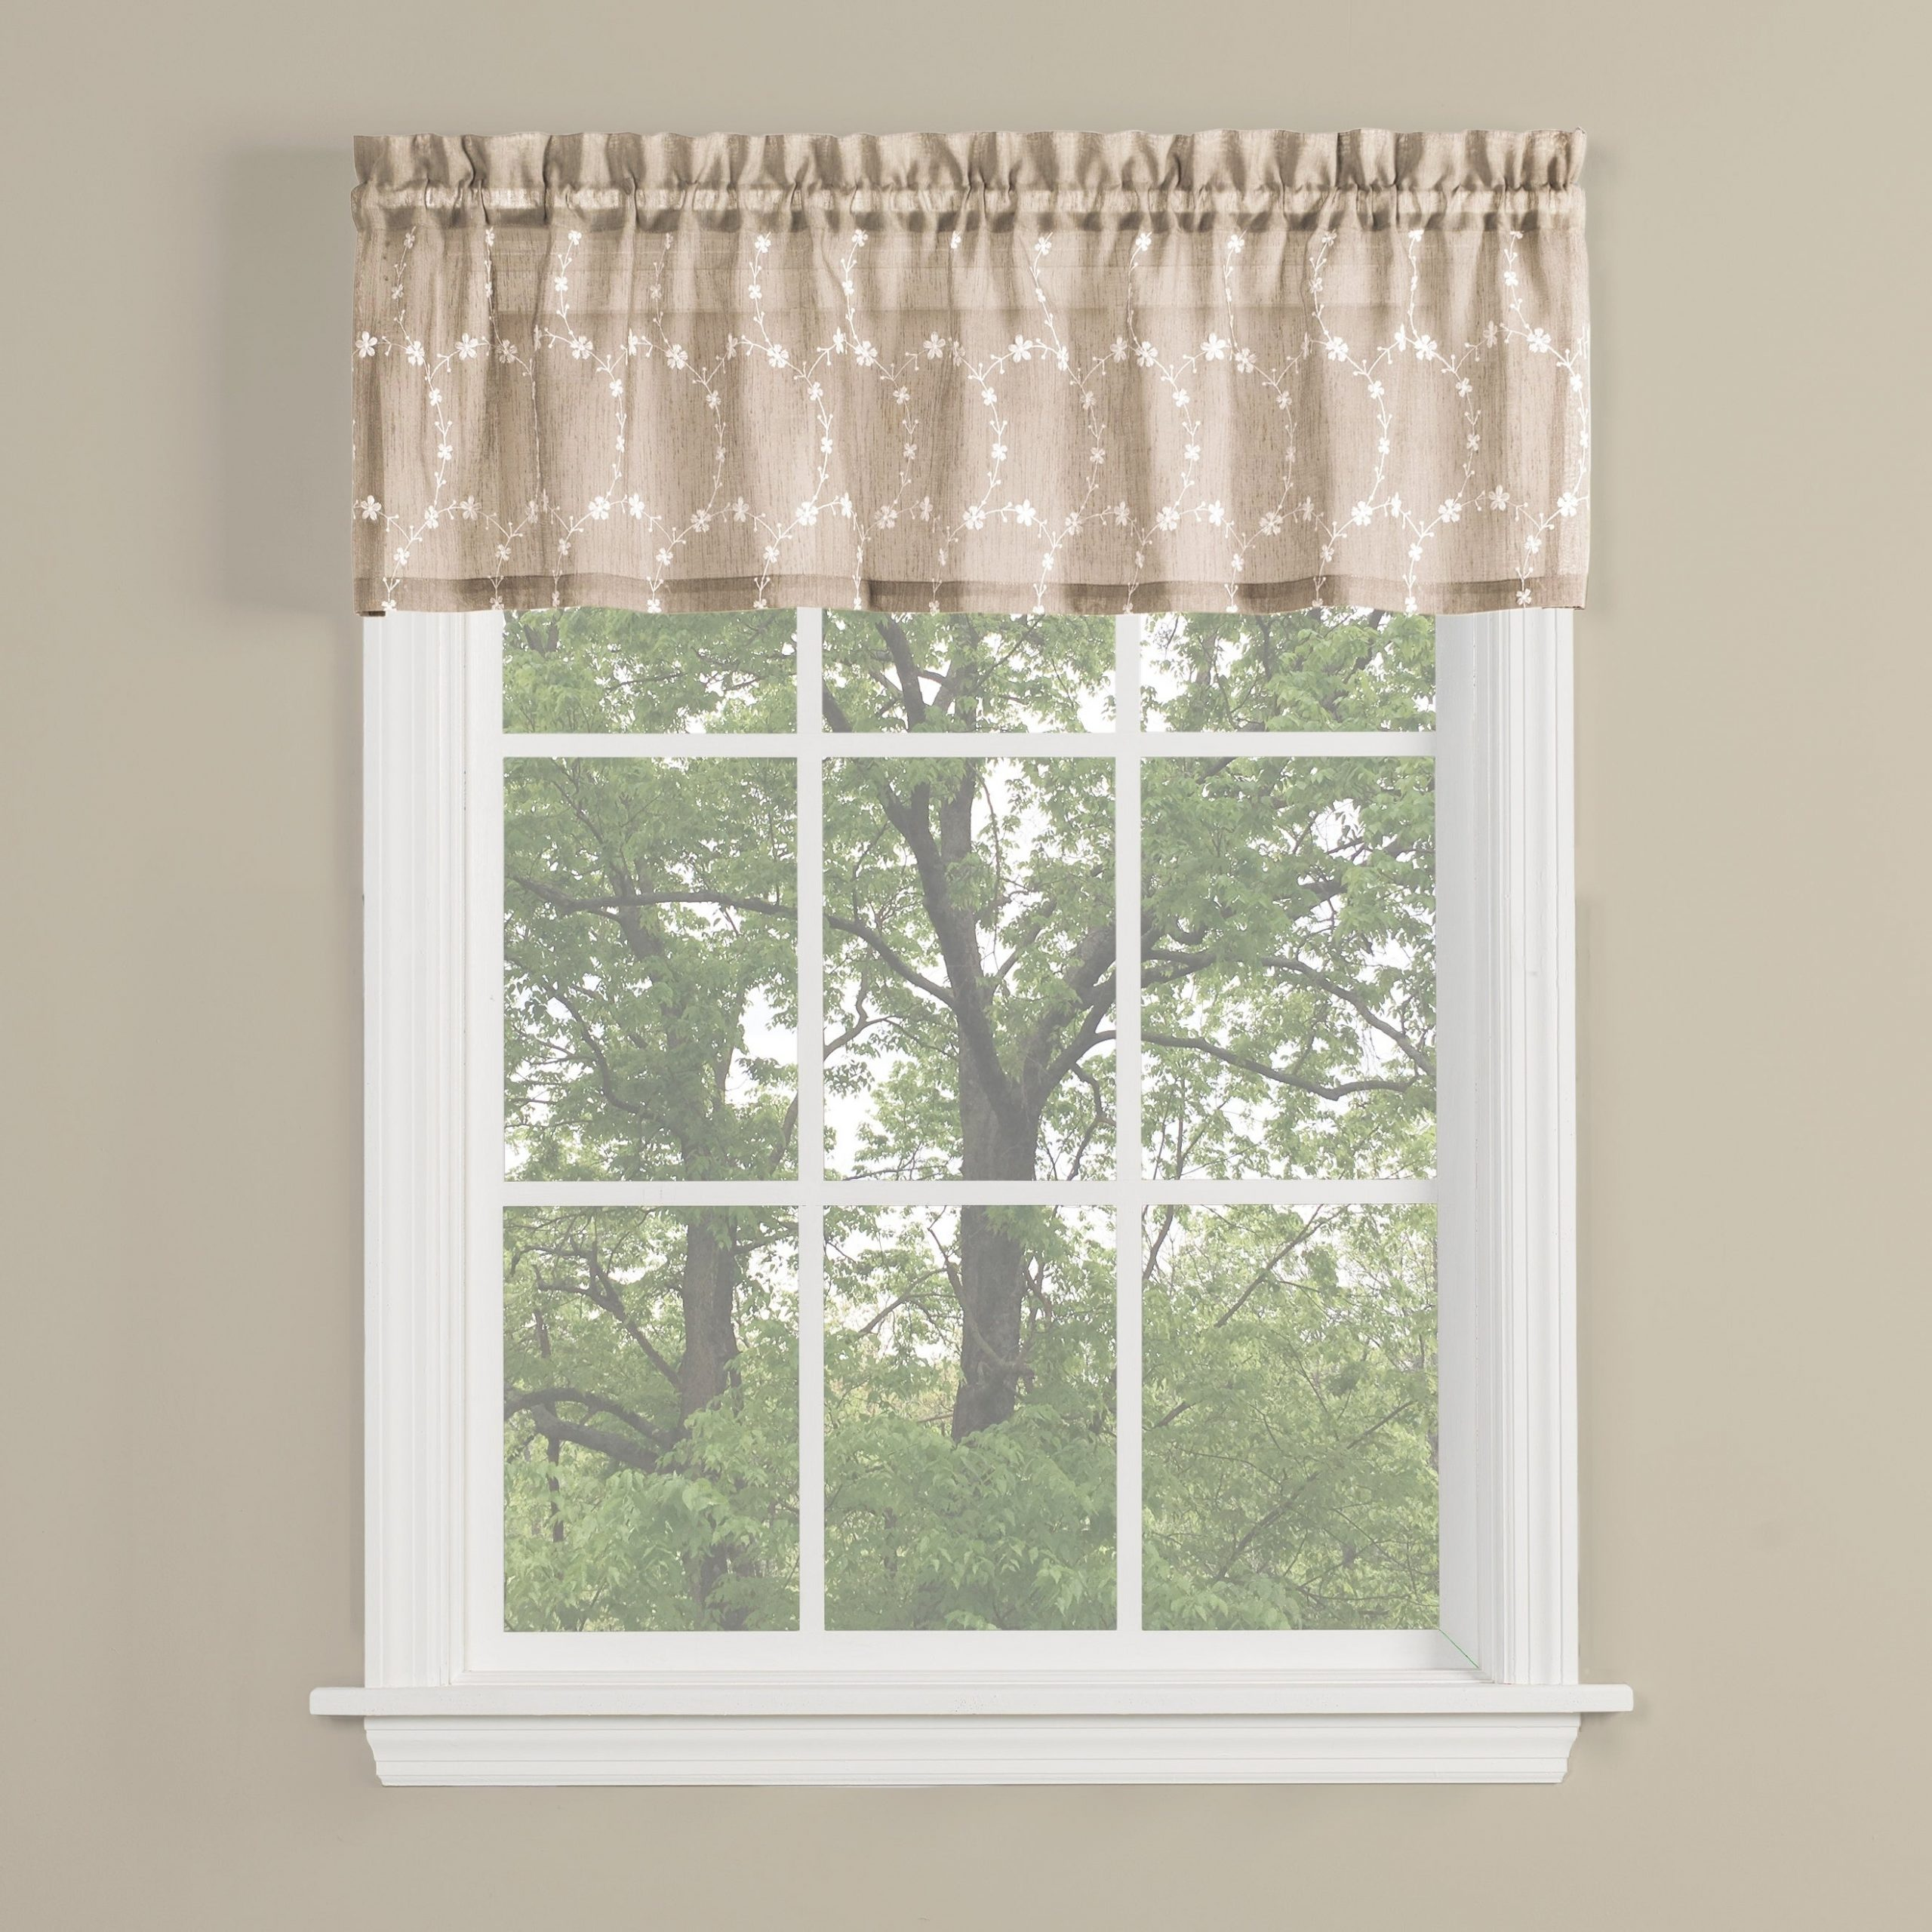 Skl Home Briarwood 13 Inch Valance In Wheat Pertaining To Latest Dexter 24 Inch Tier Pairs In Green (View 10 of 20)